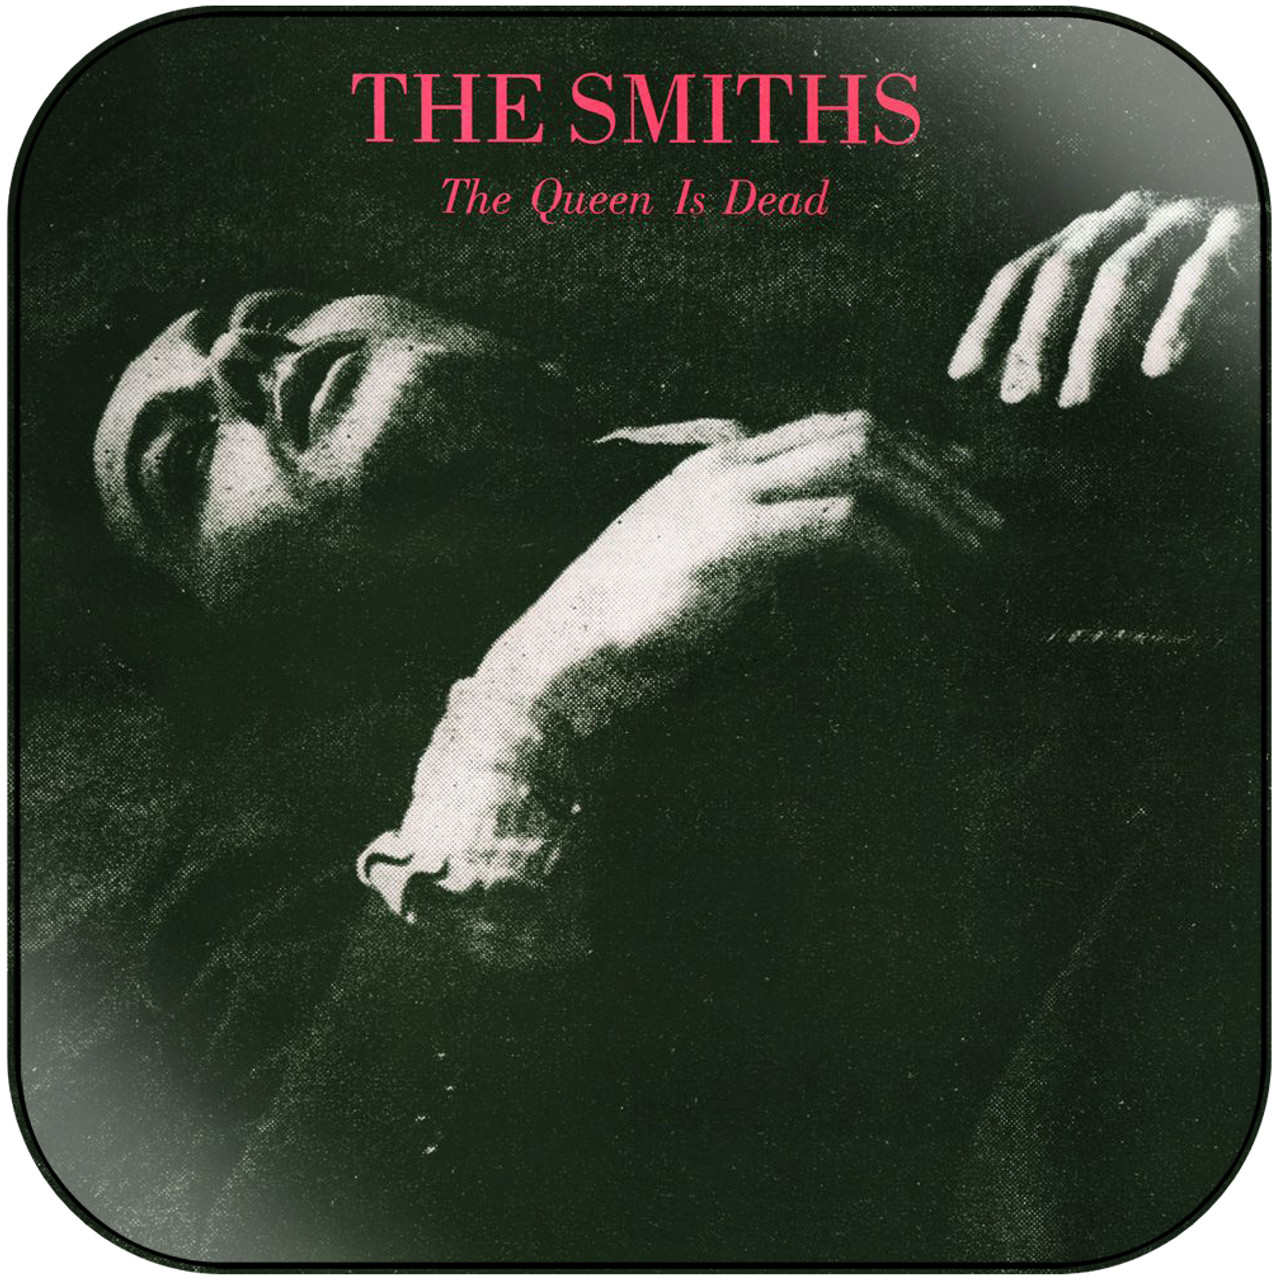 The Smiths - The Queen Is Dead-1 Album Cover Sticker